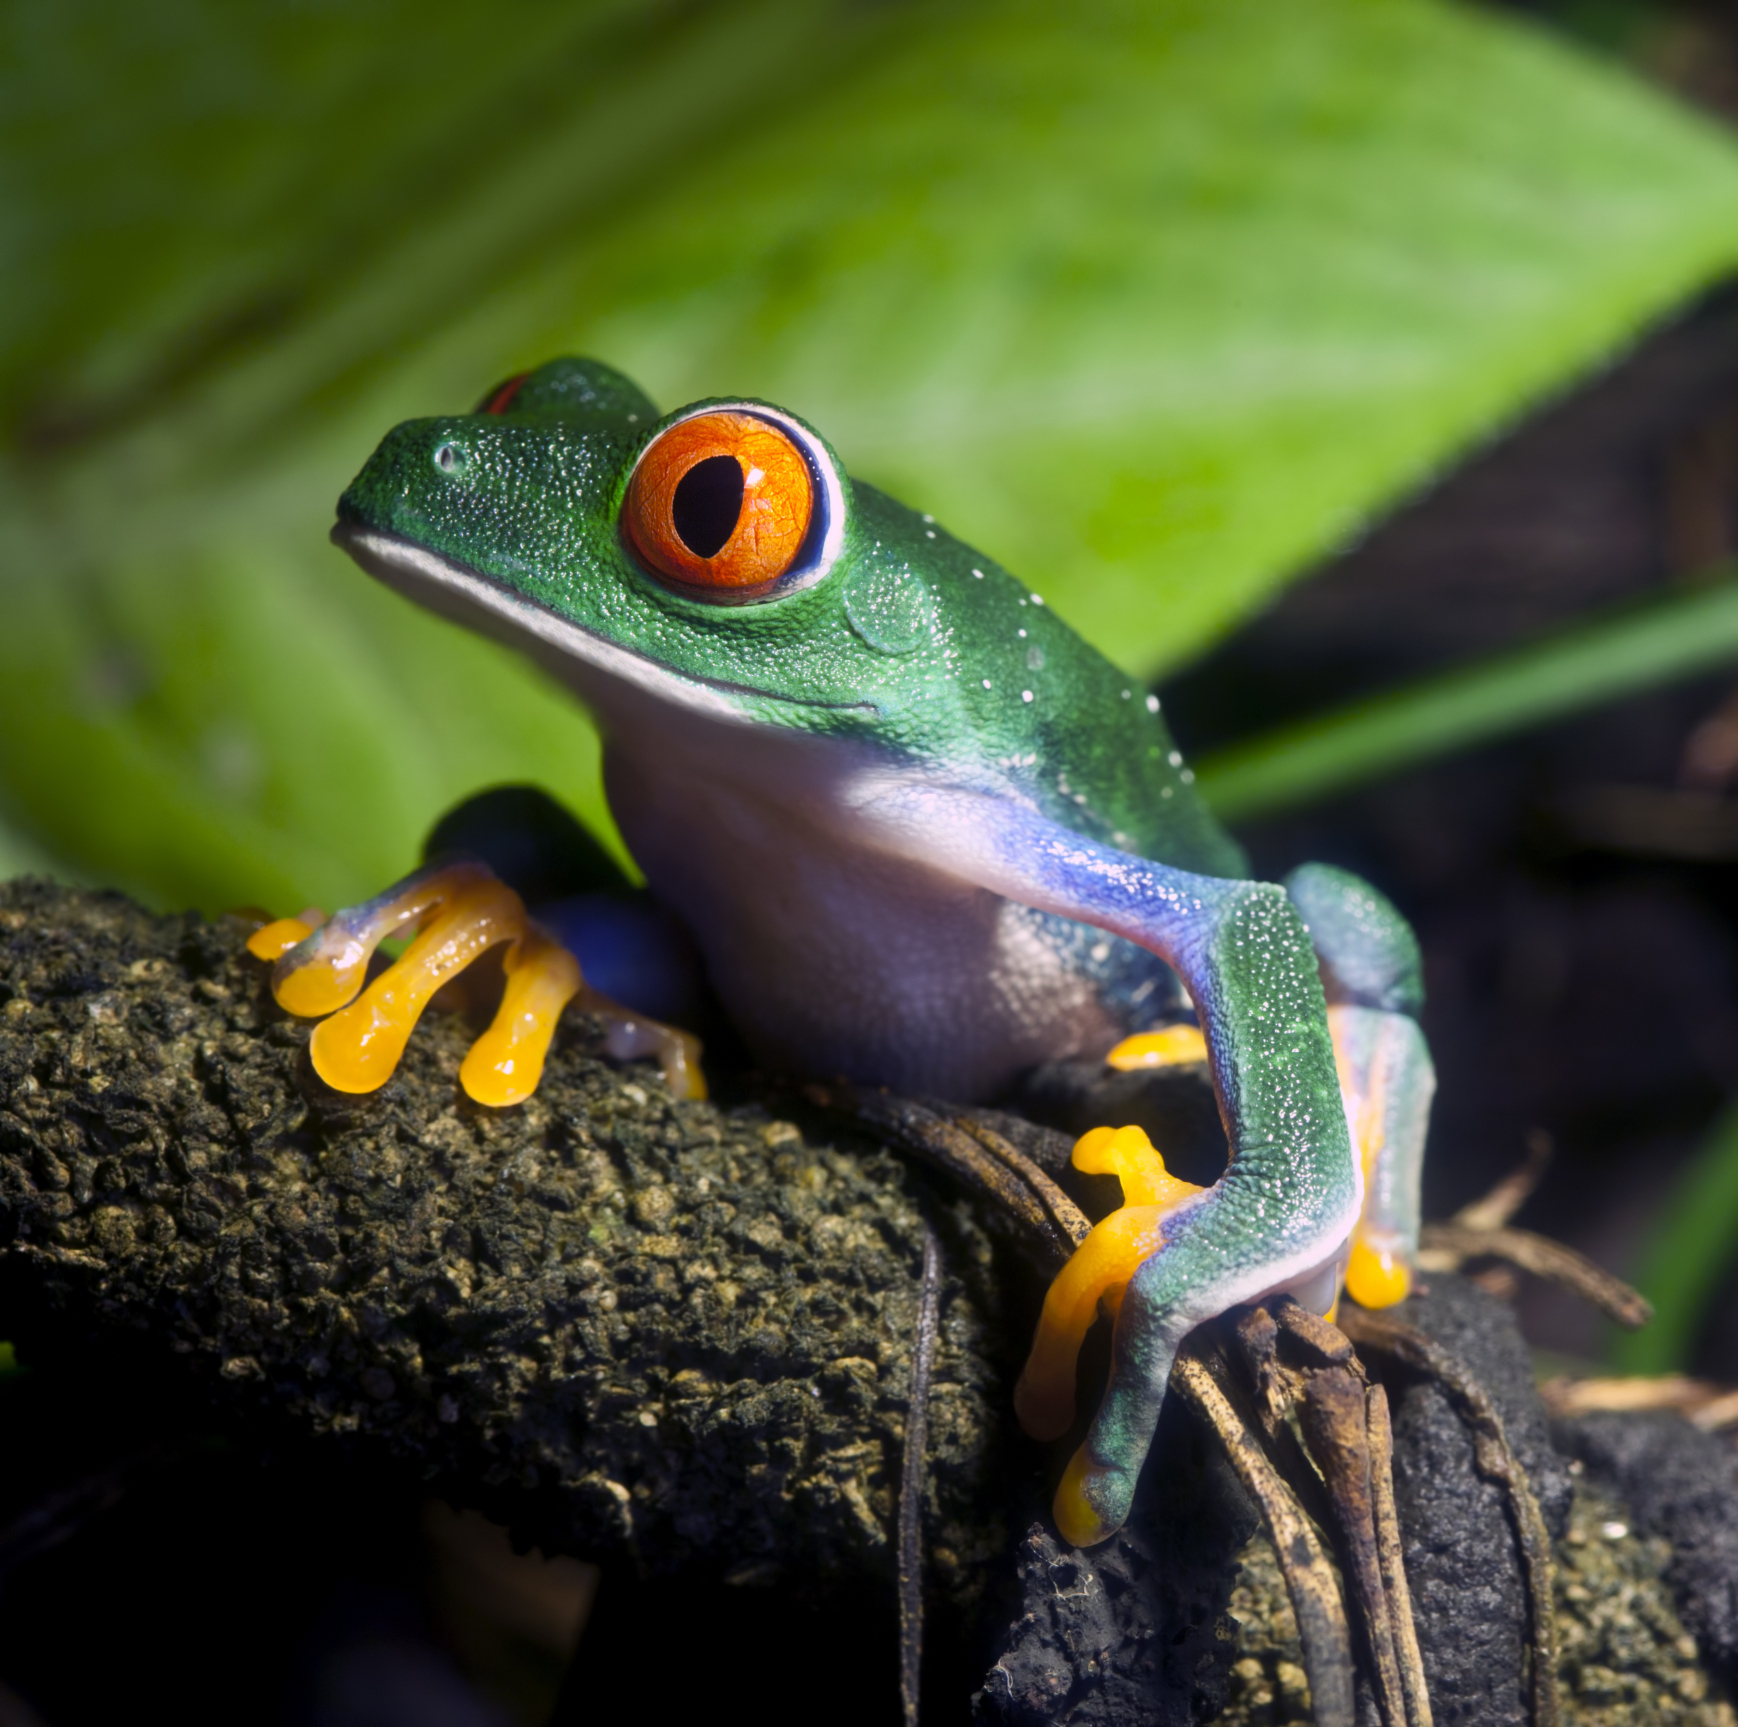 Are frogs on the brink of extinction? | HowStuffWorks